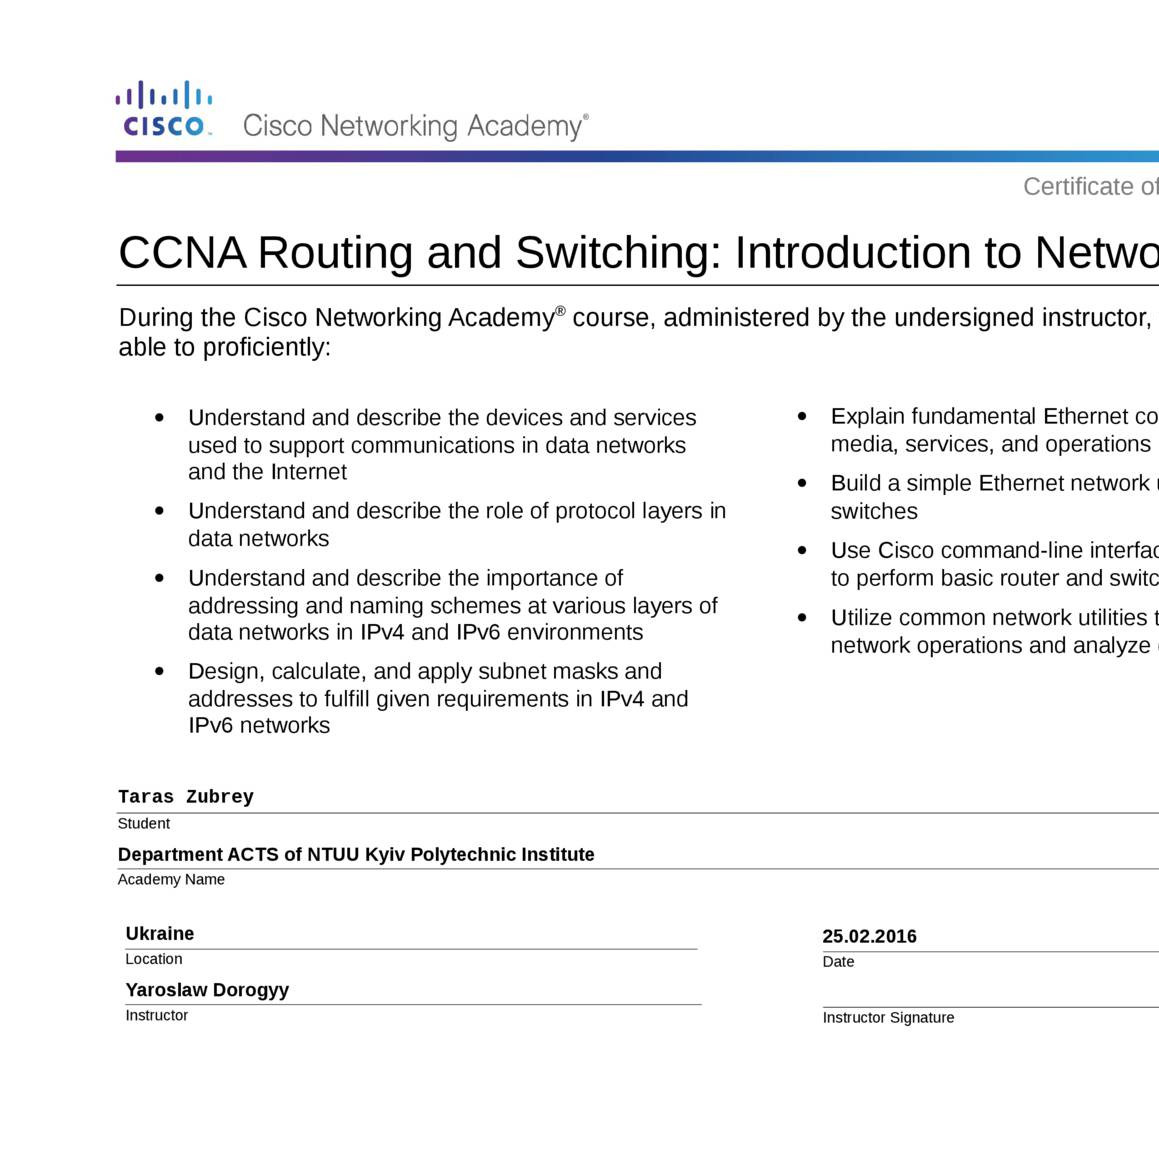 CCNA Routing and Switching Introduction to Networks pdf